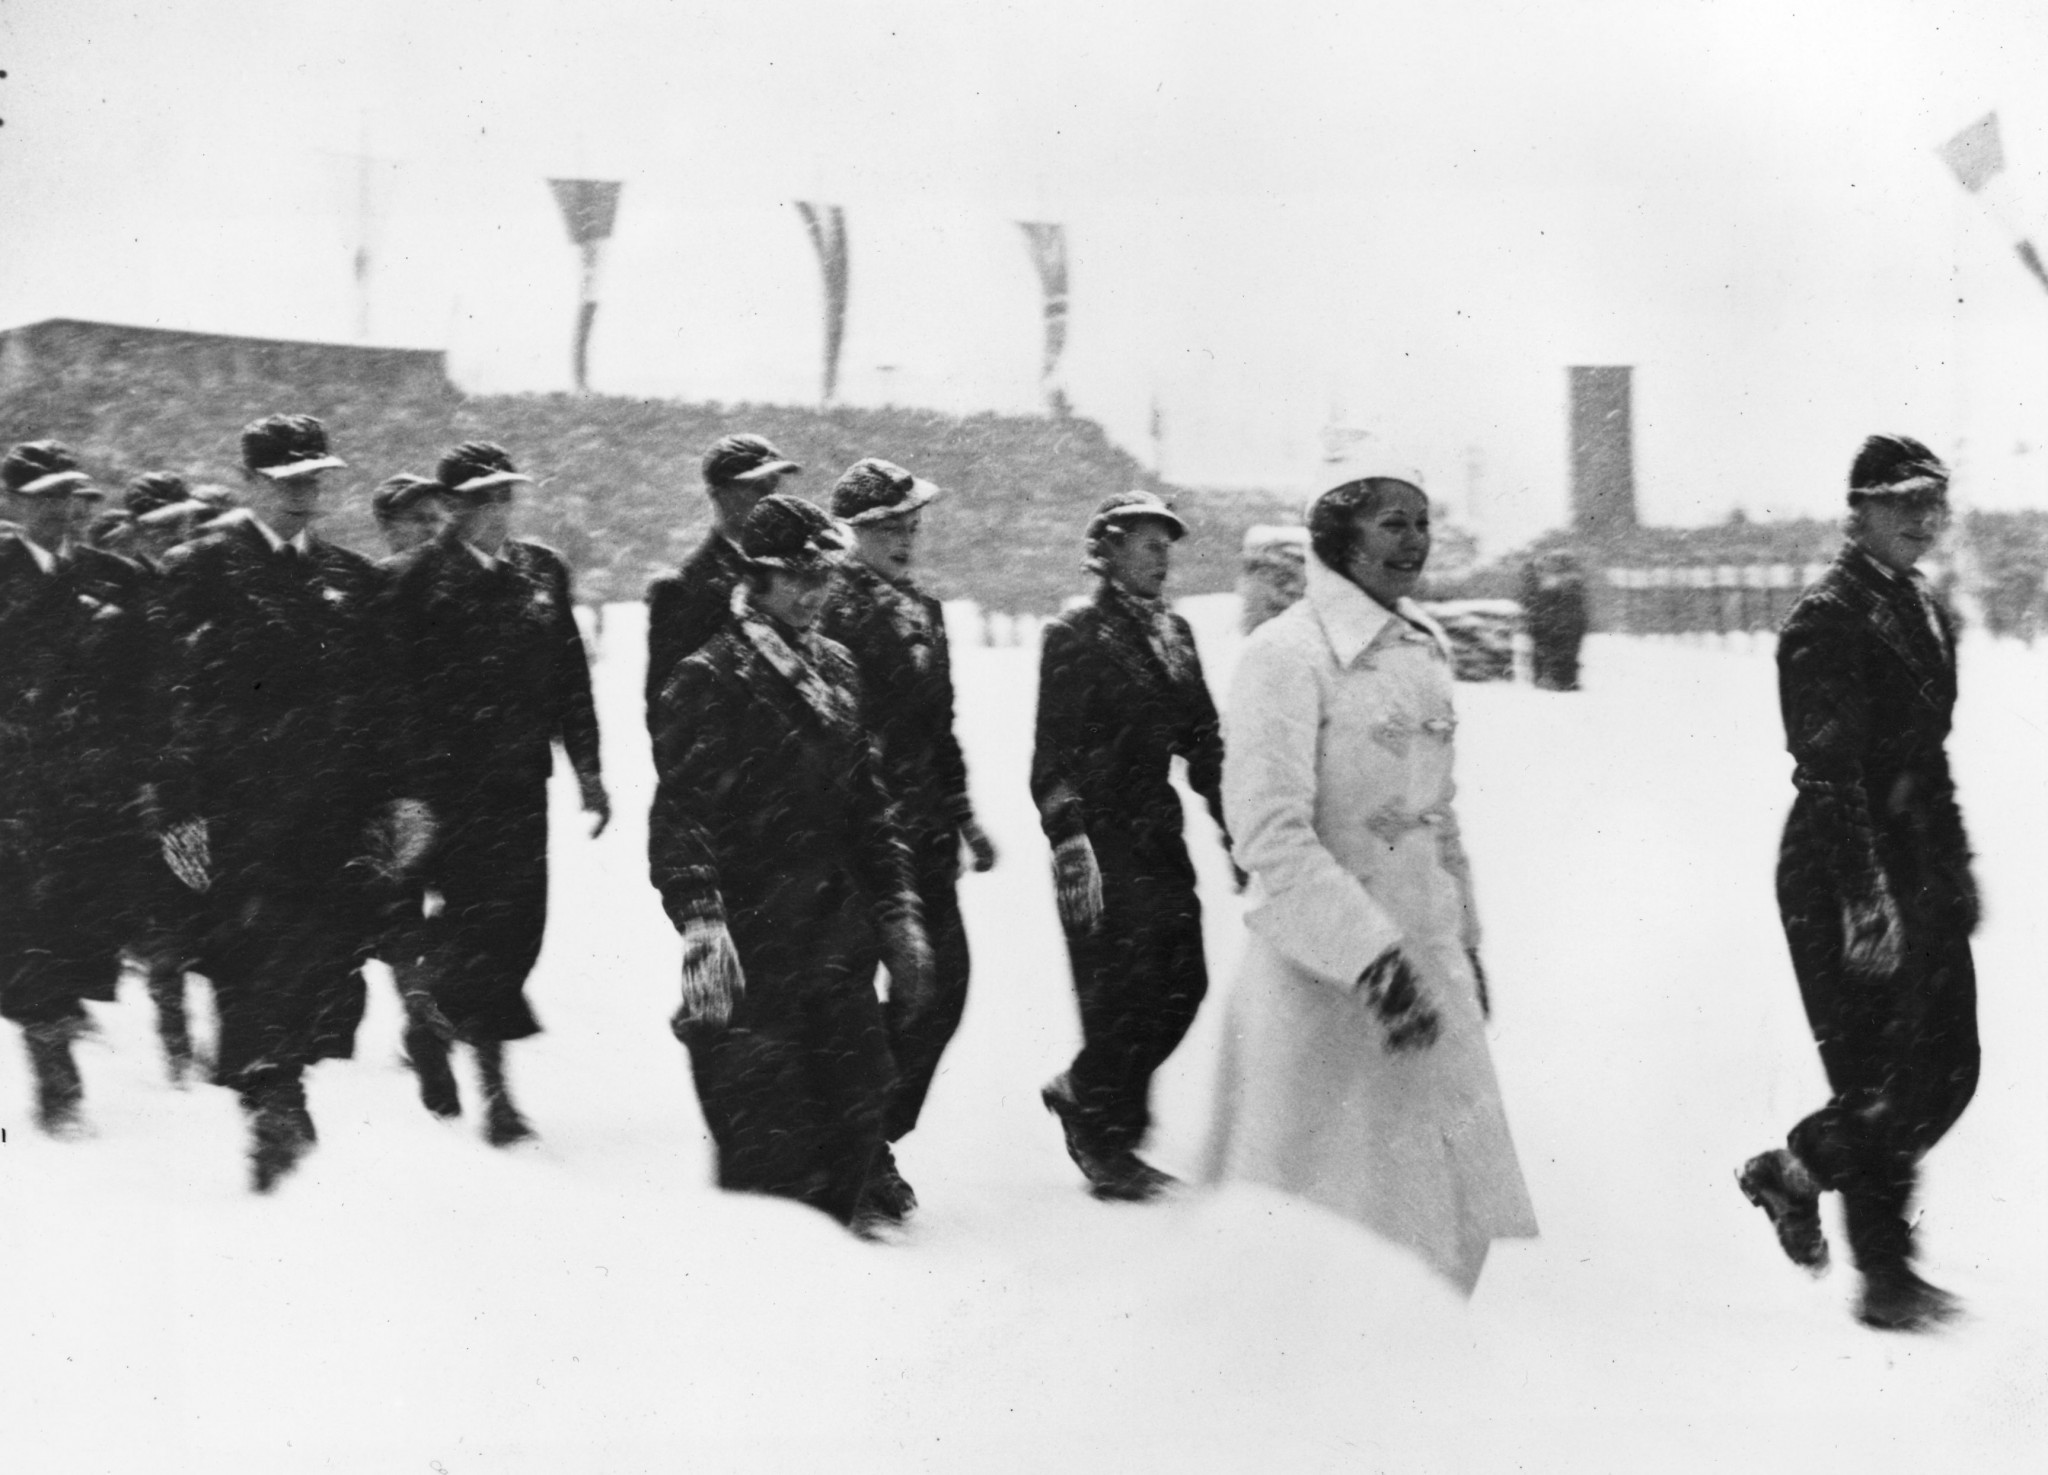 Baron Falz-Fein also participated at the Garmisch-Partenkirchen Winter Olympic Games in 1936 ©Getty Images